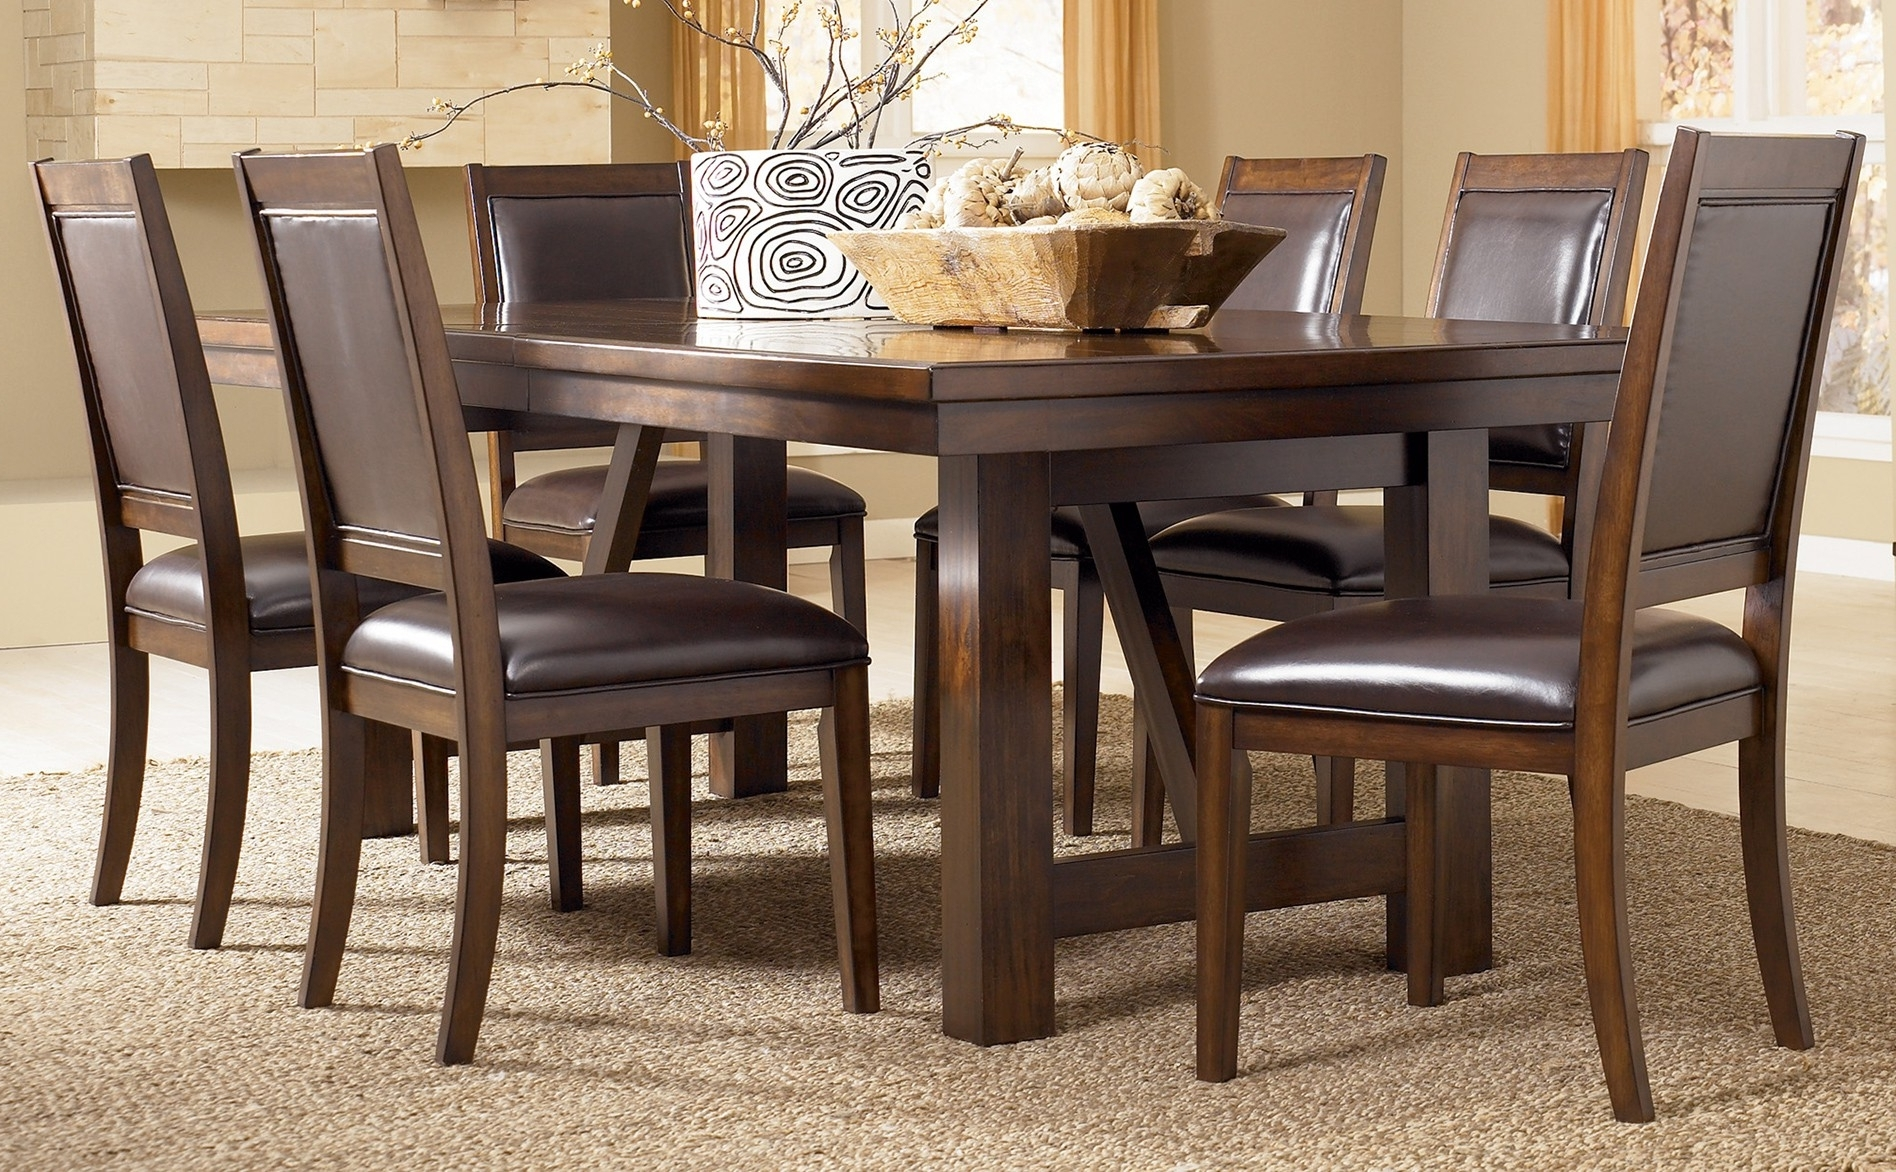 Sofa Chairs With Dining Table Inside Current Emejing Ashleys Furniture Dining Tables Photos – Liltigertoo (View 12 of 20)